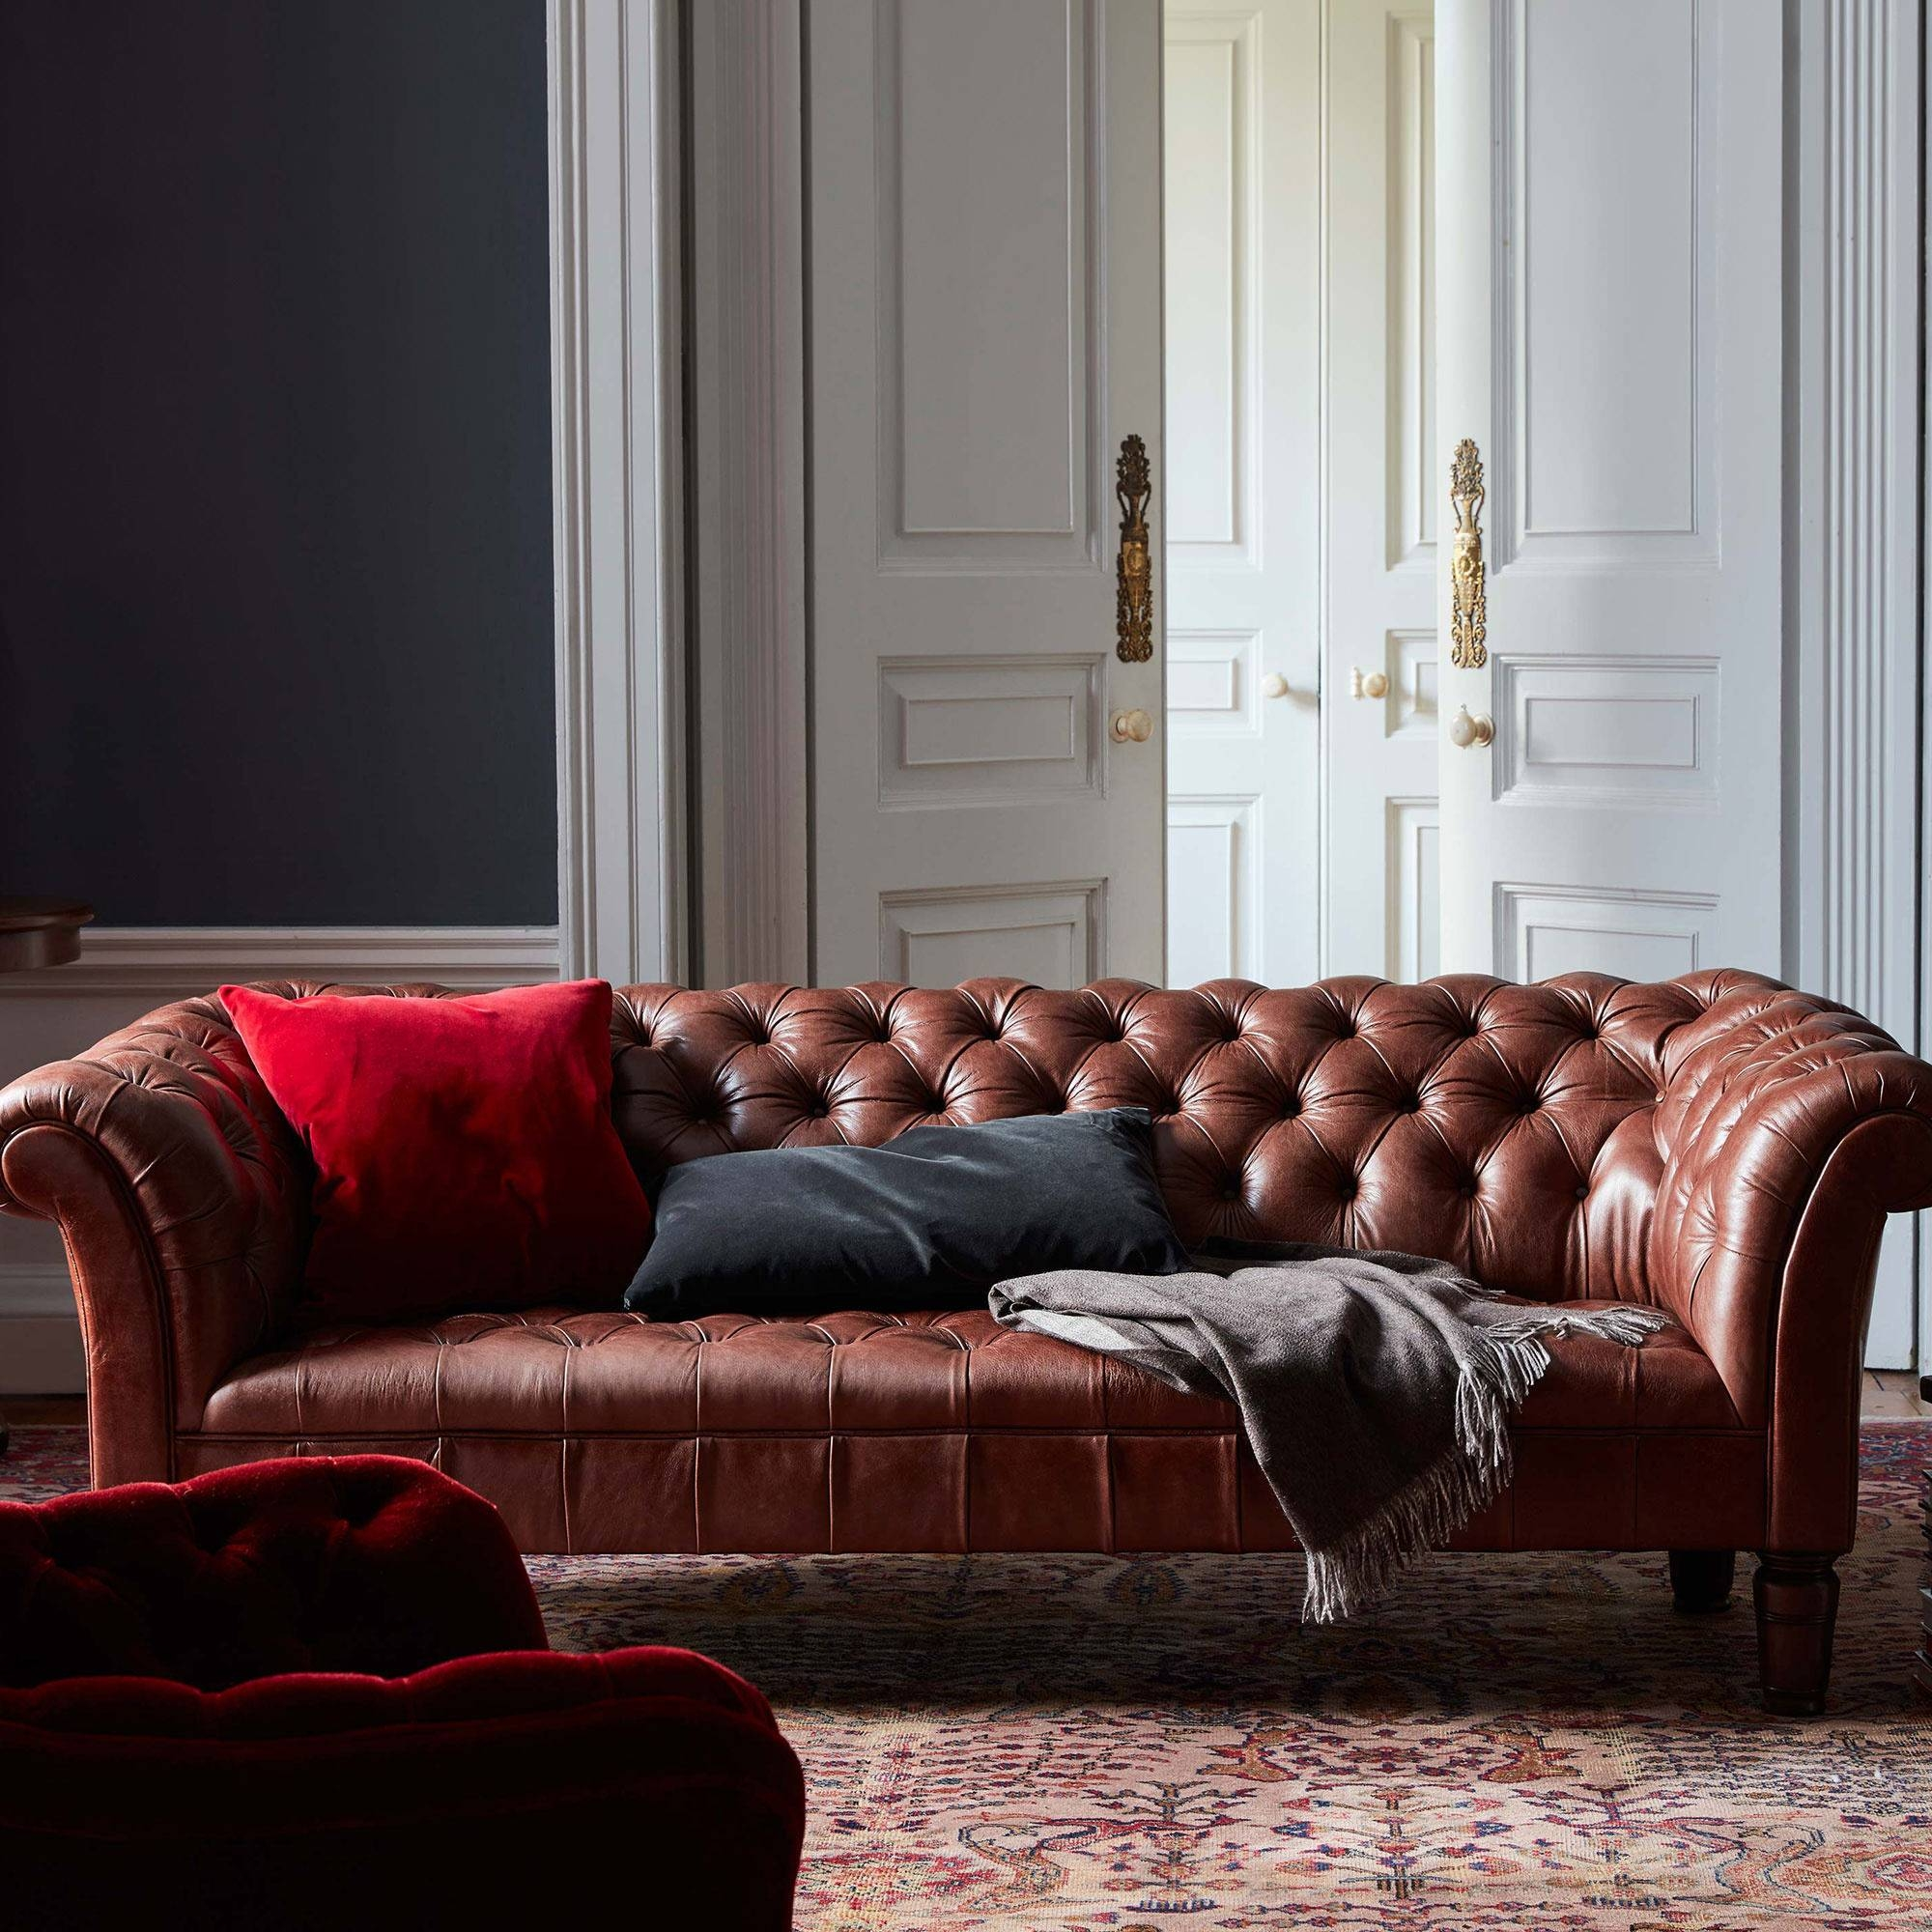 Chesterfield Sofa, Chestnut Leather intended for Leather Chesterfield Sofas (Image 9 of 30)